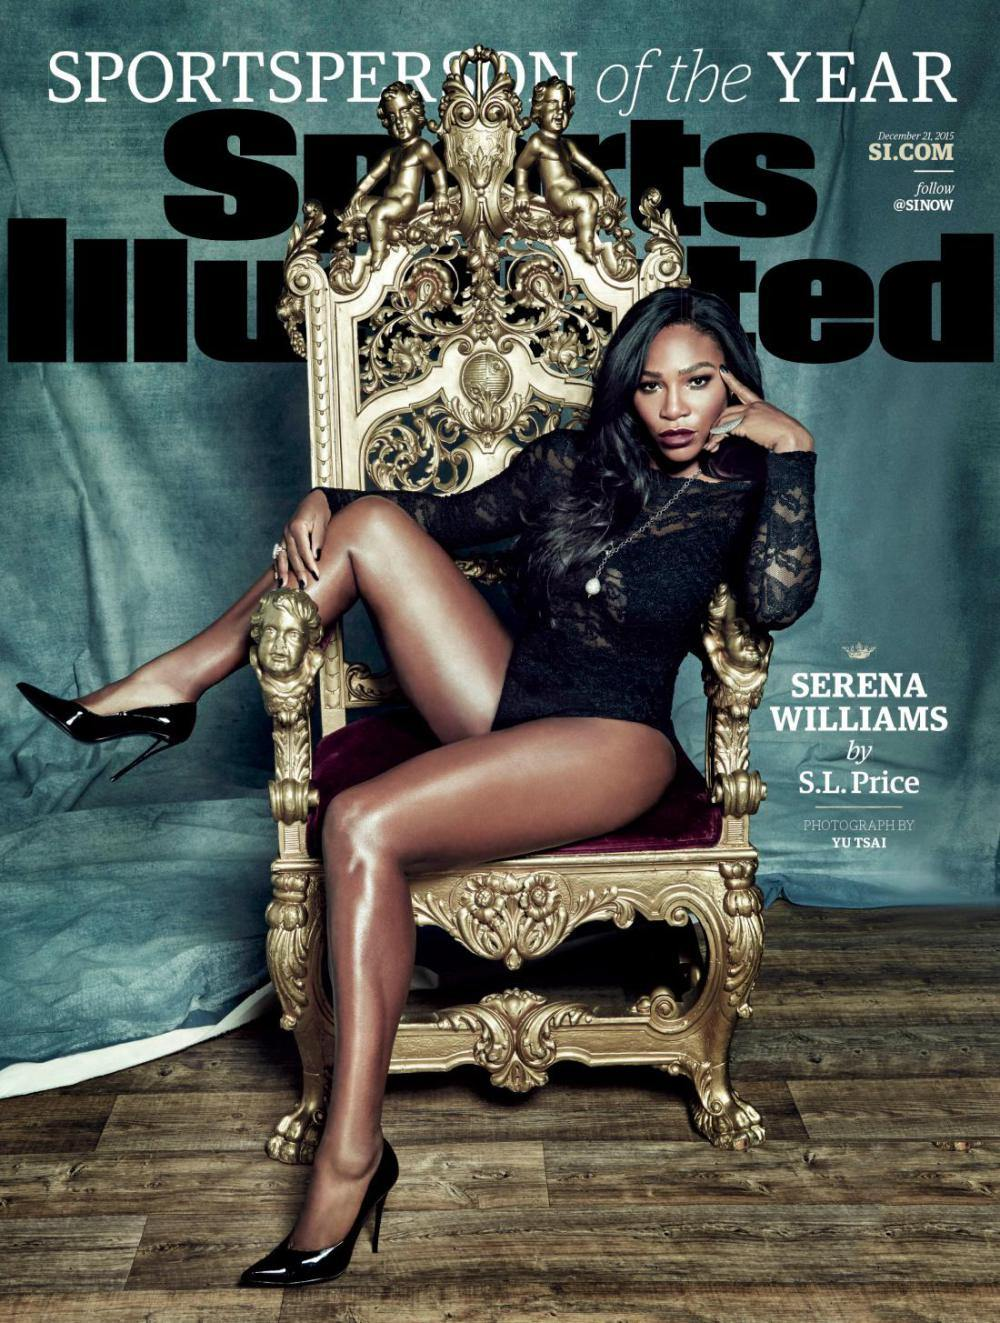 Serena Williams graced the cover of Sports Illustrated, and was named 2015 sportswoman of the year.